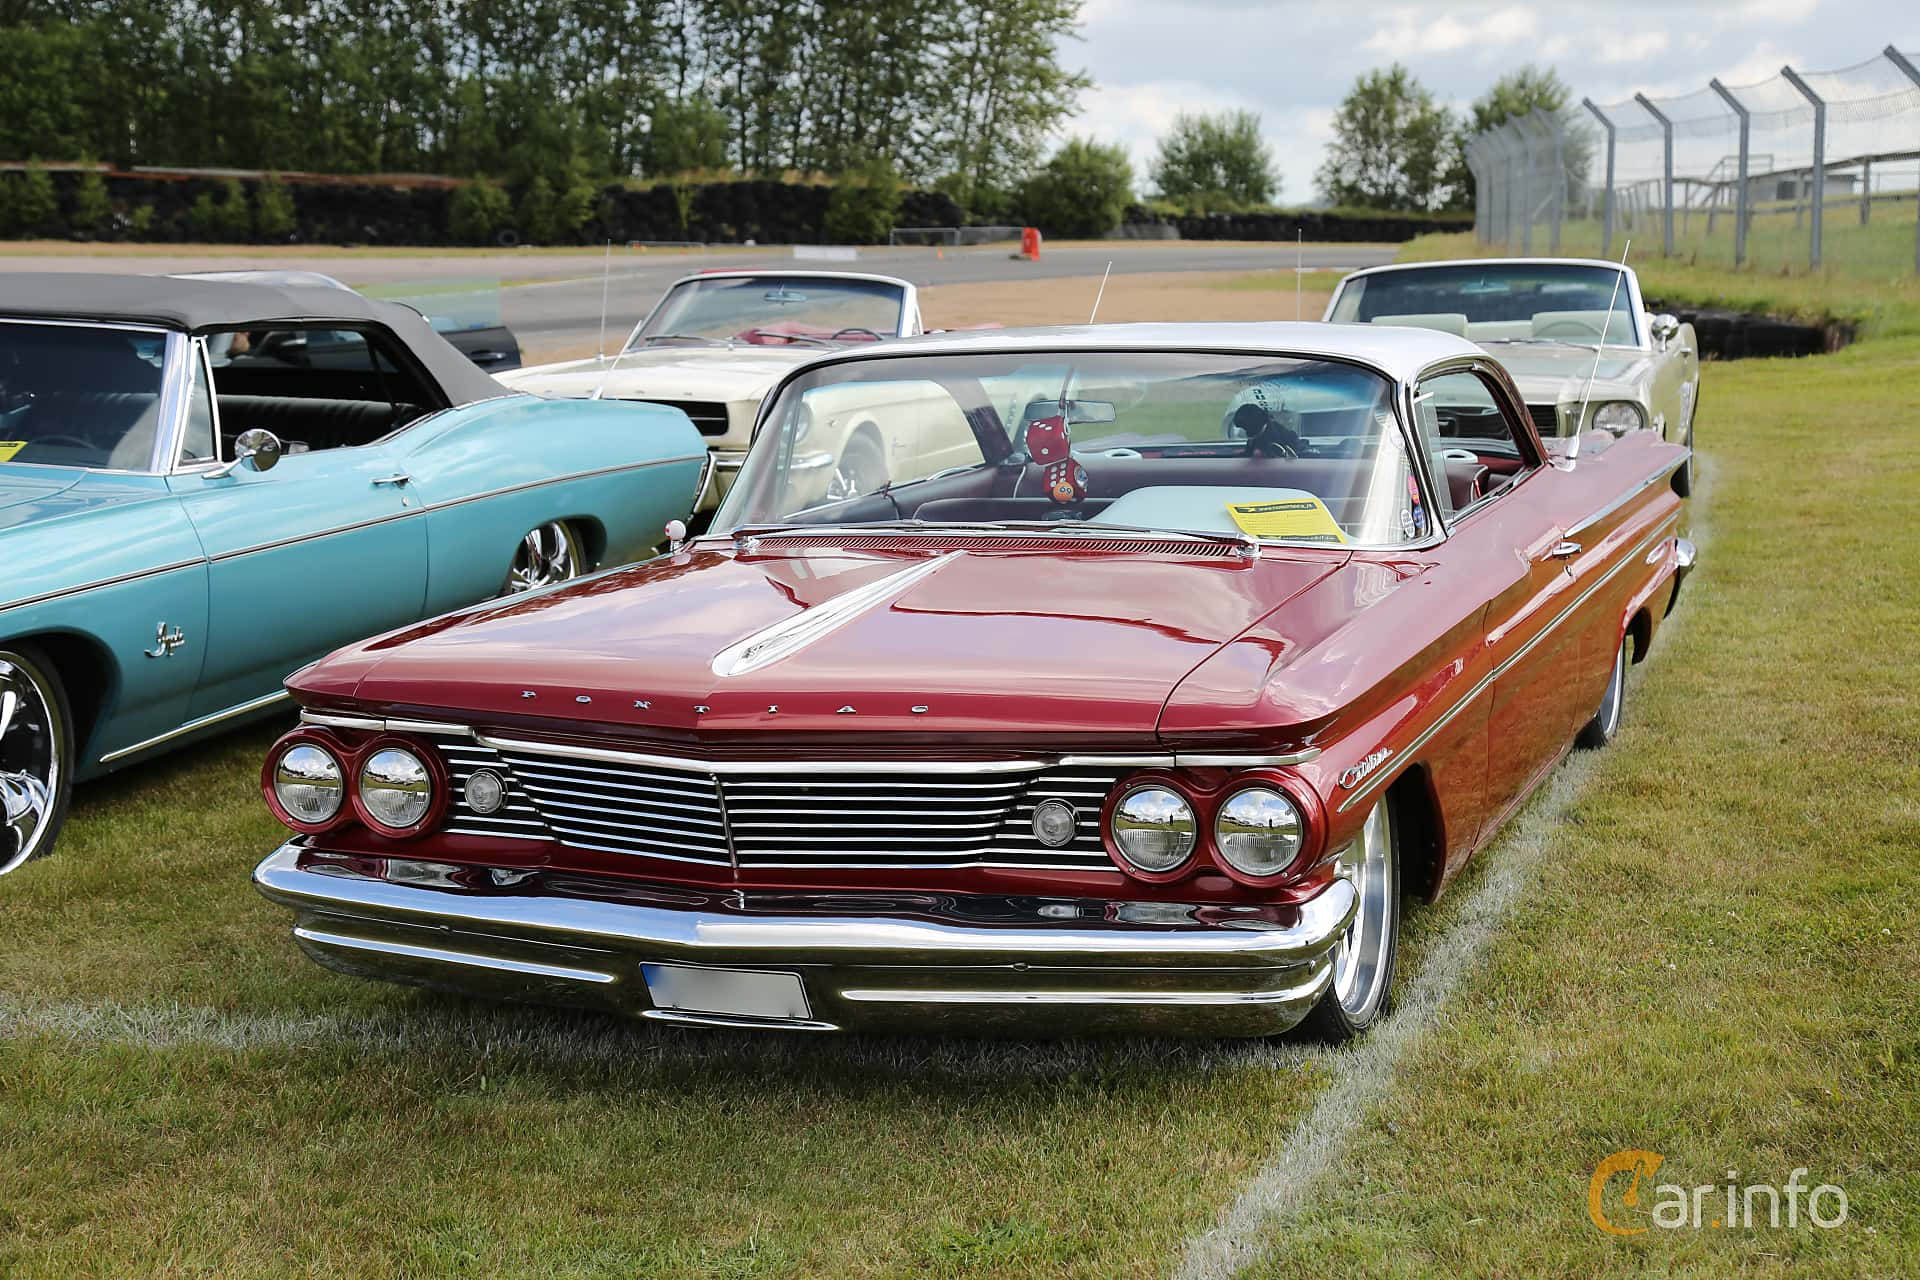 1 Images Of Pontiac Catalina 2 Door Hardtop 64 V8 Automatic 264hp 1960 Front Side 264ps